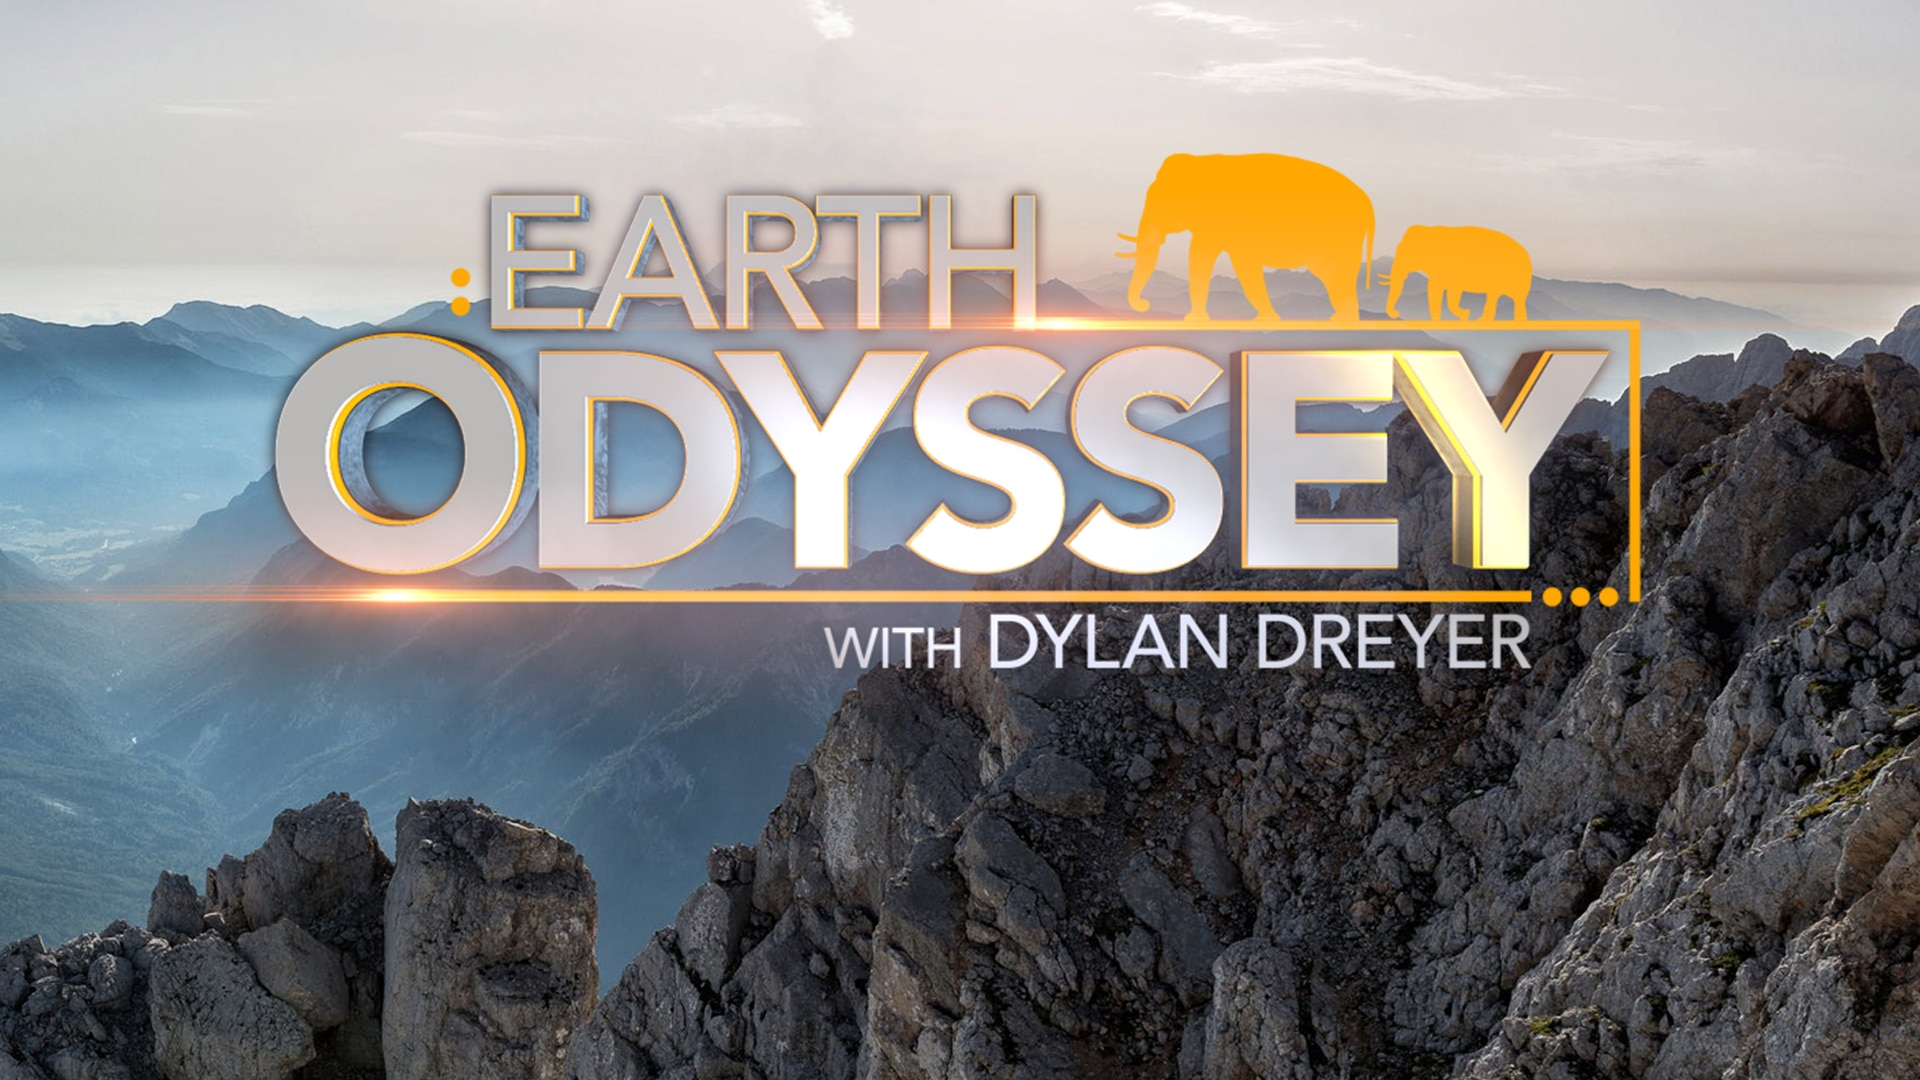 Earth Odyssey with Dylan Dreyer on FREECABLE TV